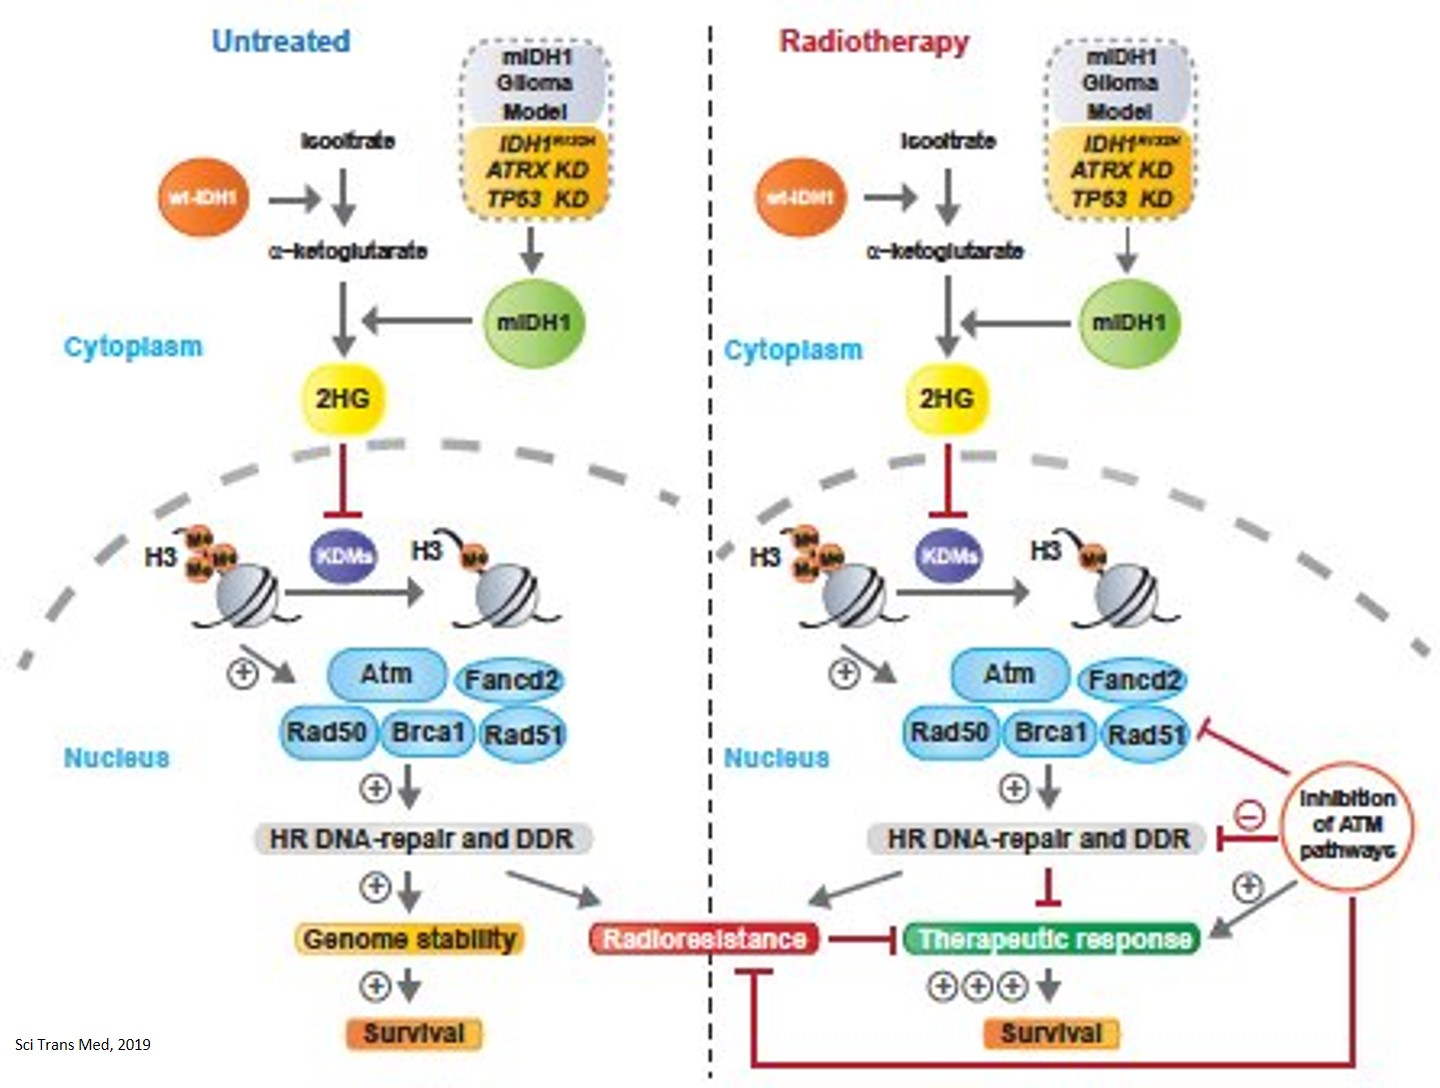 Linking glioma metabolism and DNA repair